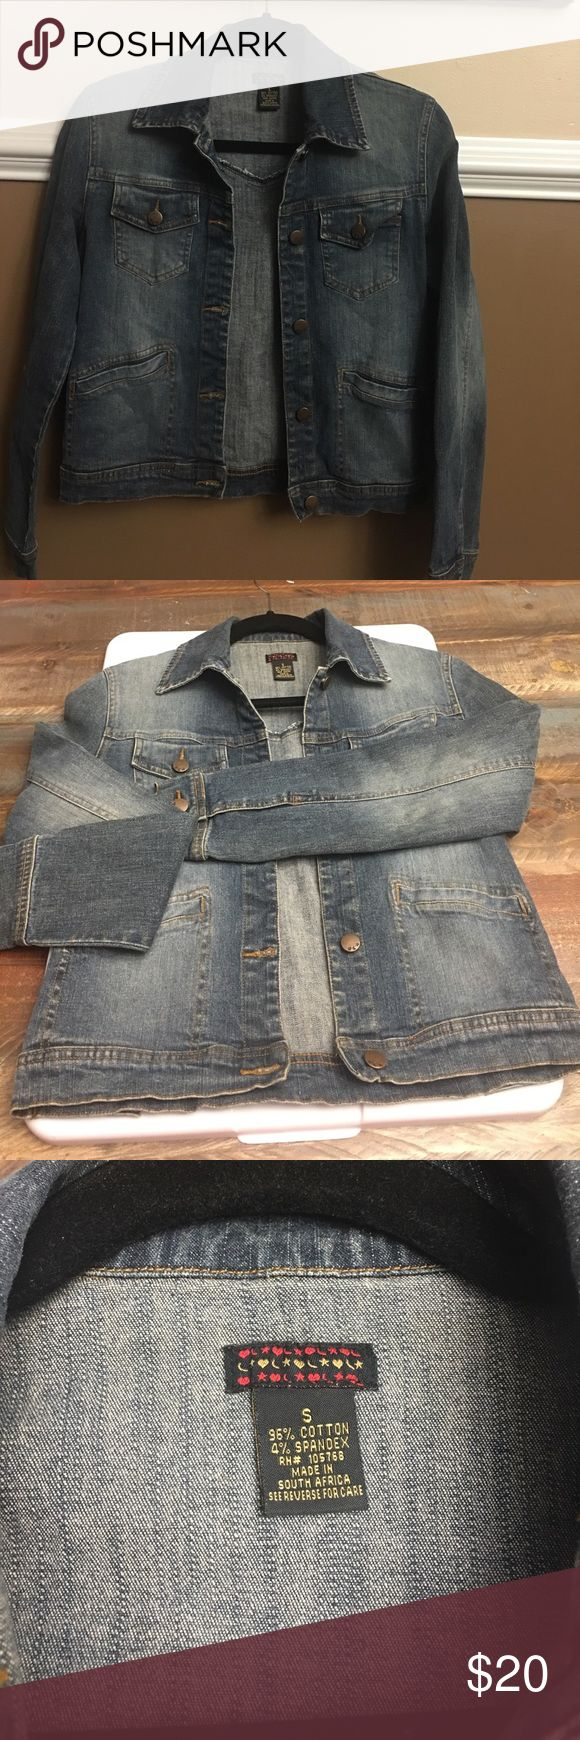 Ladies denim jacket This jacket is in excellent condition.. worn only a few times. Very soft comfy with a washed out look Jackets & Coats Jean Jackets